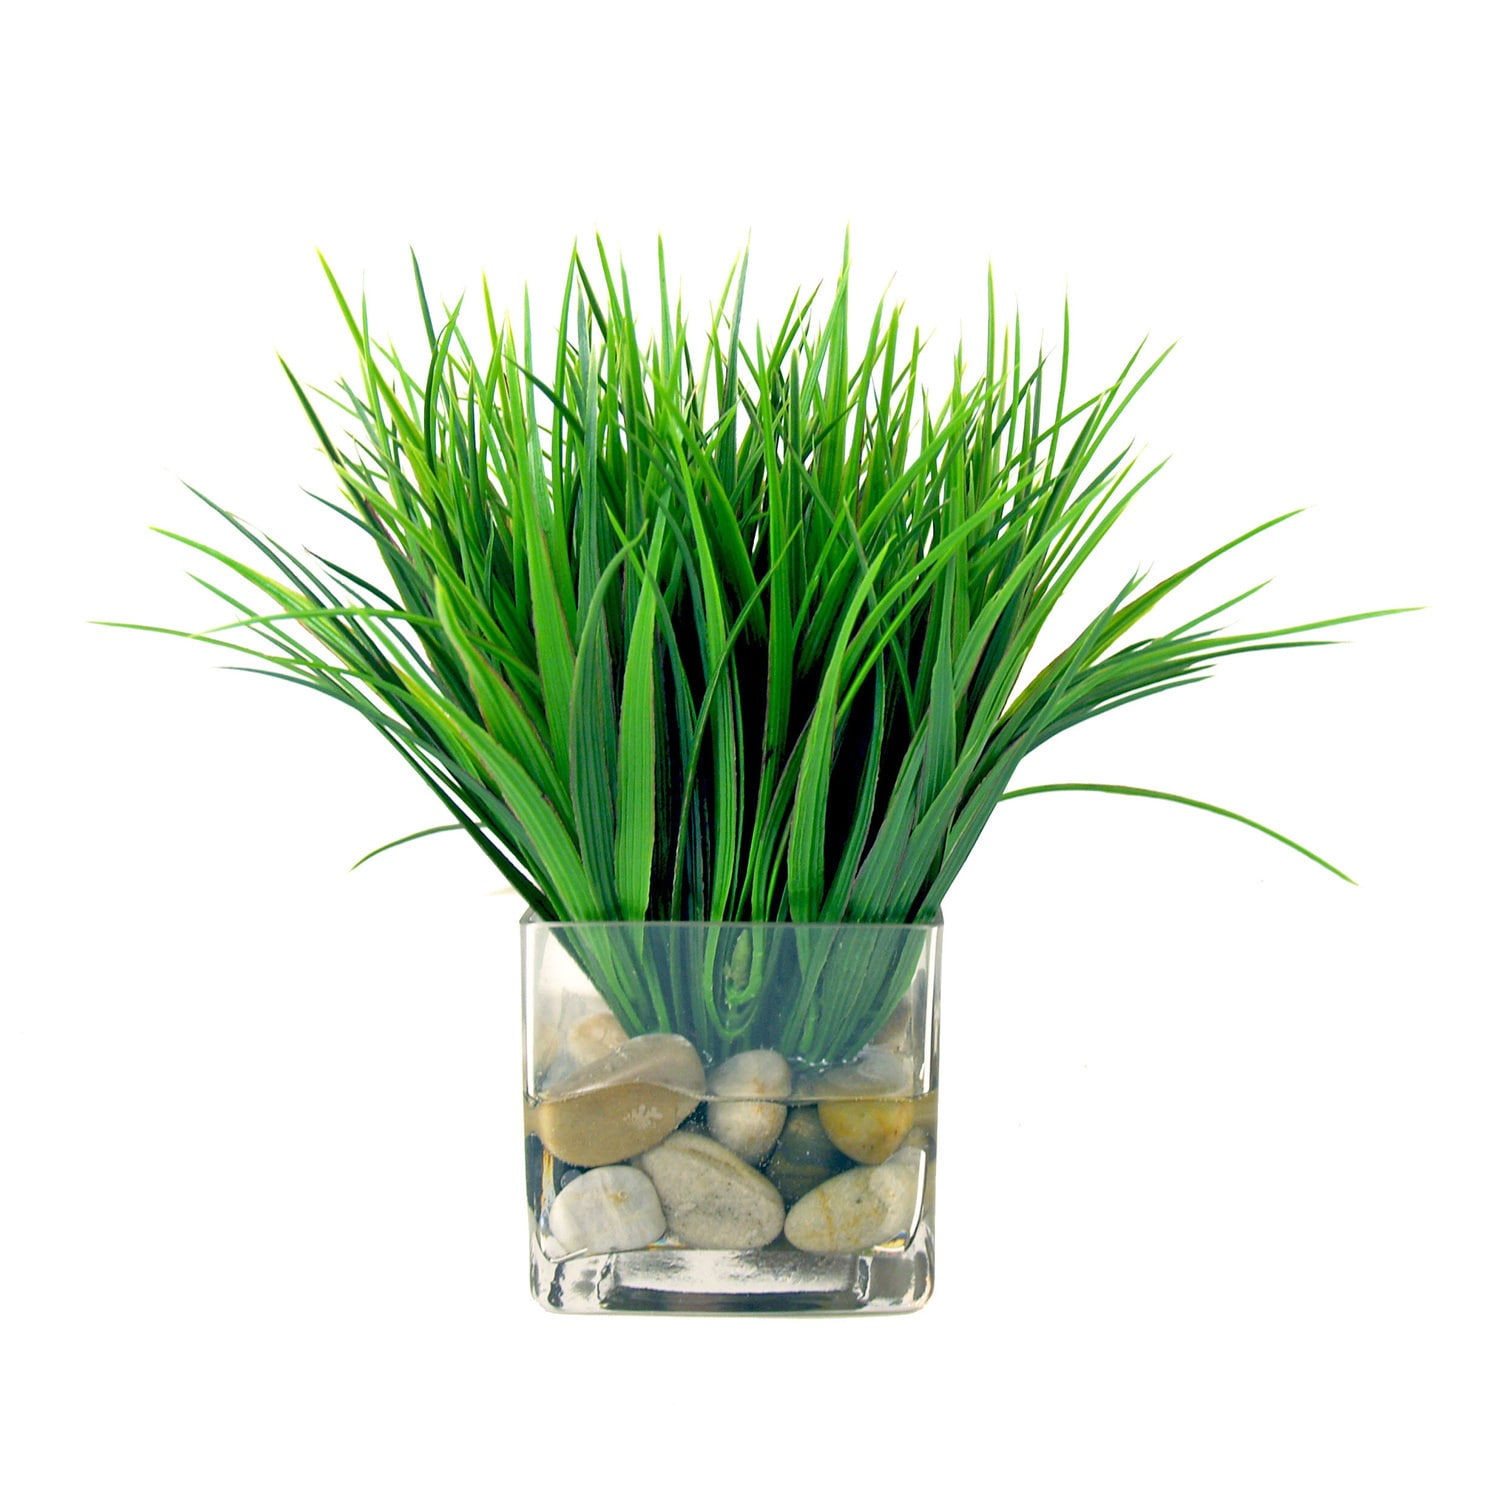 Creative Displays Vanilla Grass Silk Flowers In Acrylic Water Filled Glass Cube Vase Clear